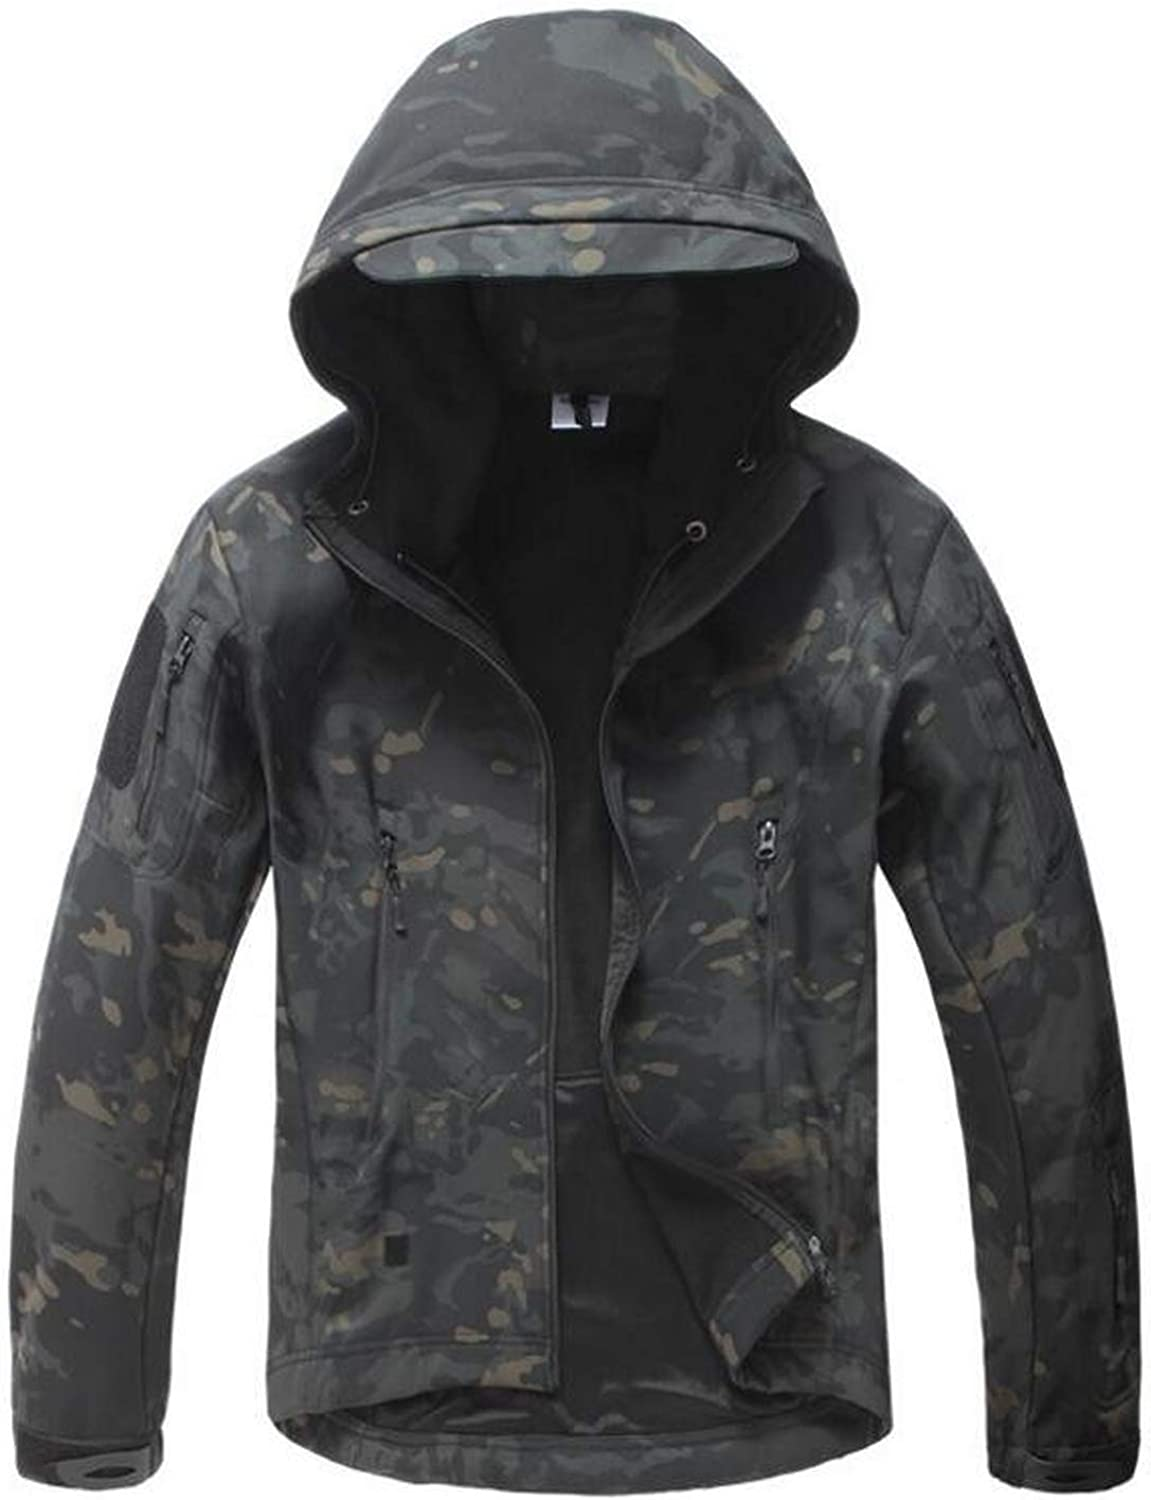 Fairyforest Camouflage Military Waterproof Windbreaker Raincoat Hunt Outerwear Tactical Jackets